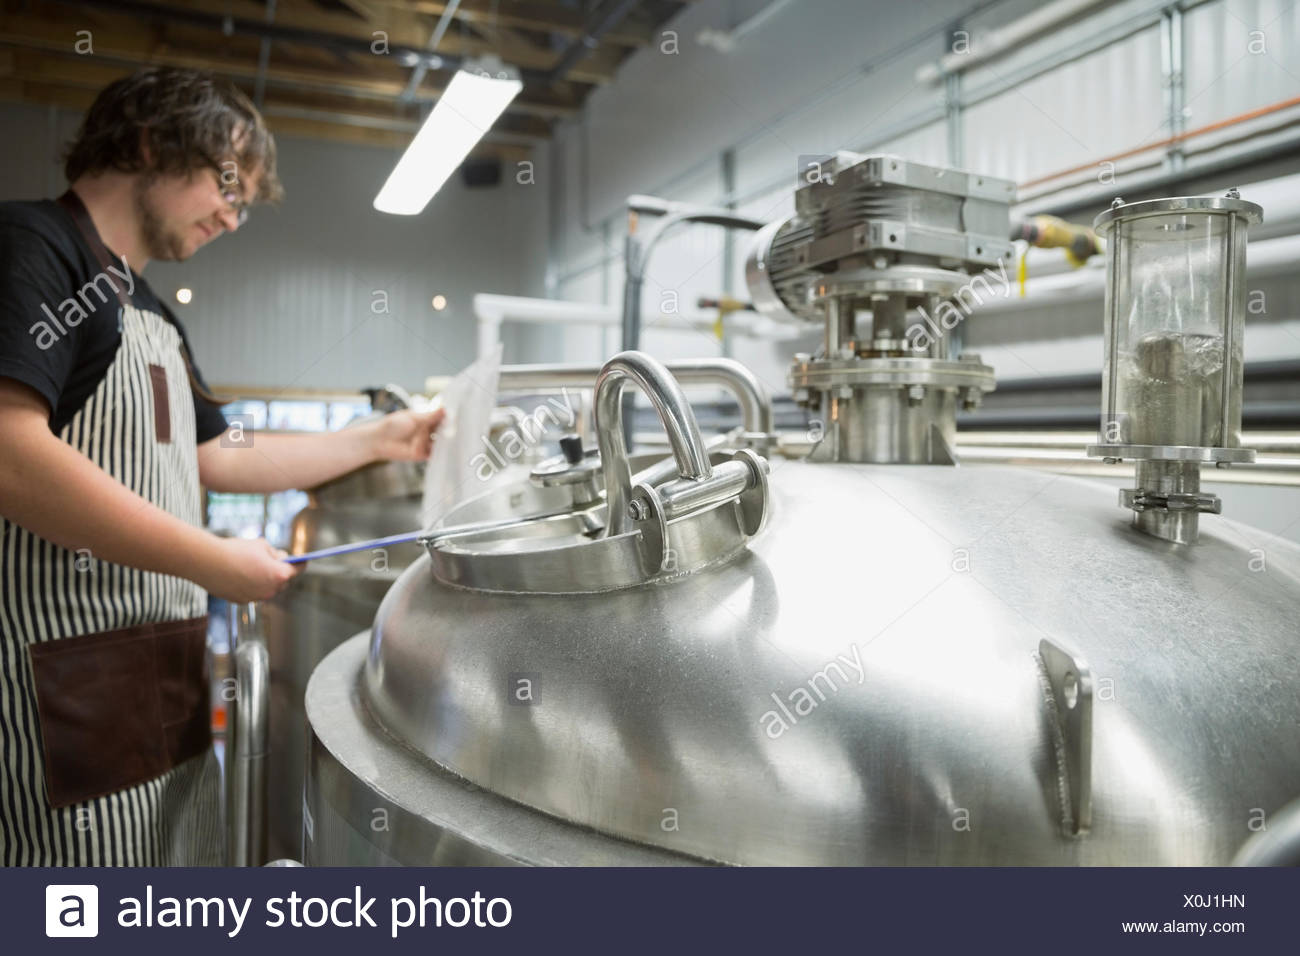 Worker with clipboard at fermentation tank in distillery - Stock Image